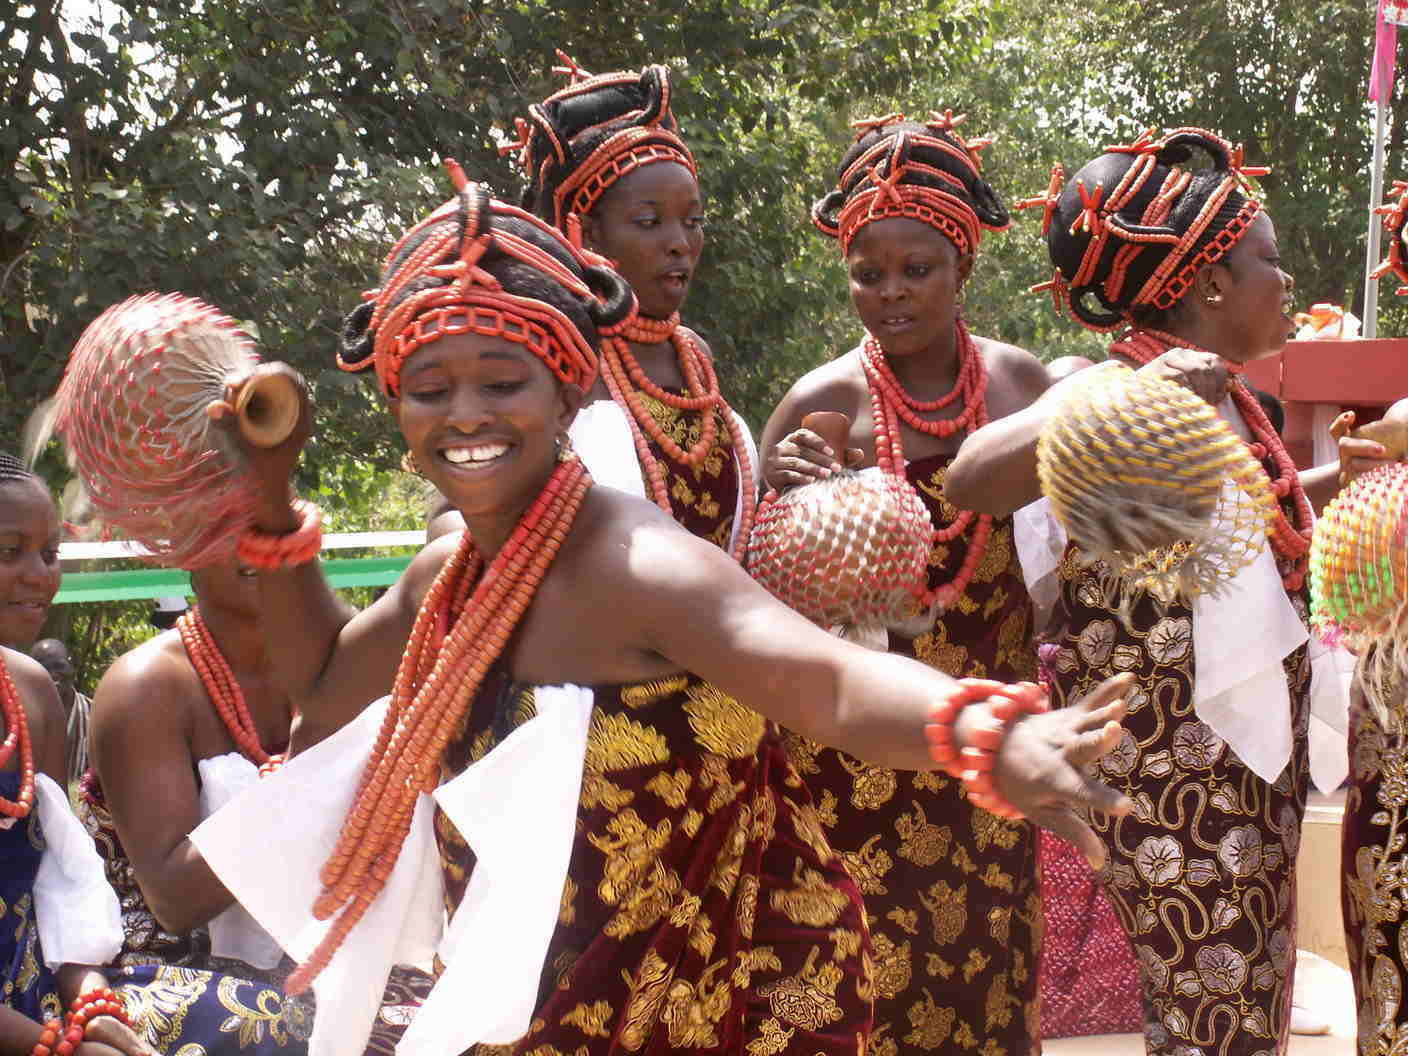 Female Benin City Dancers